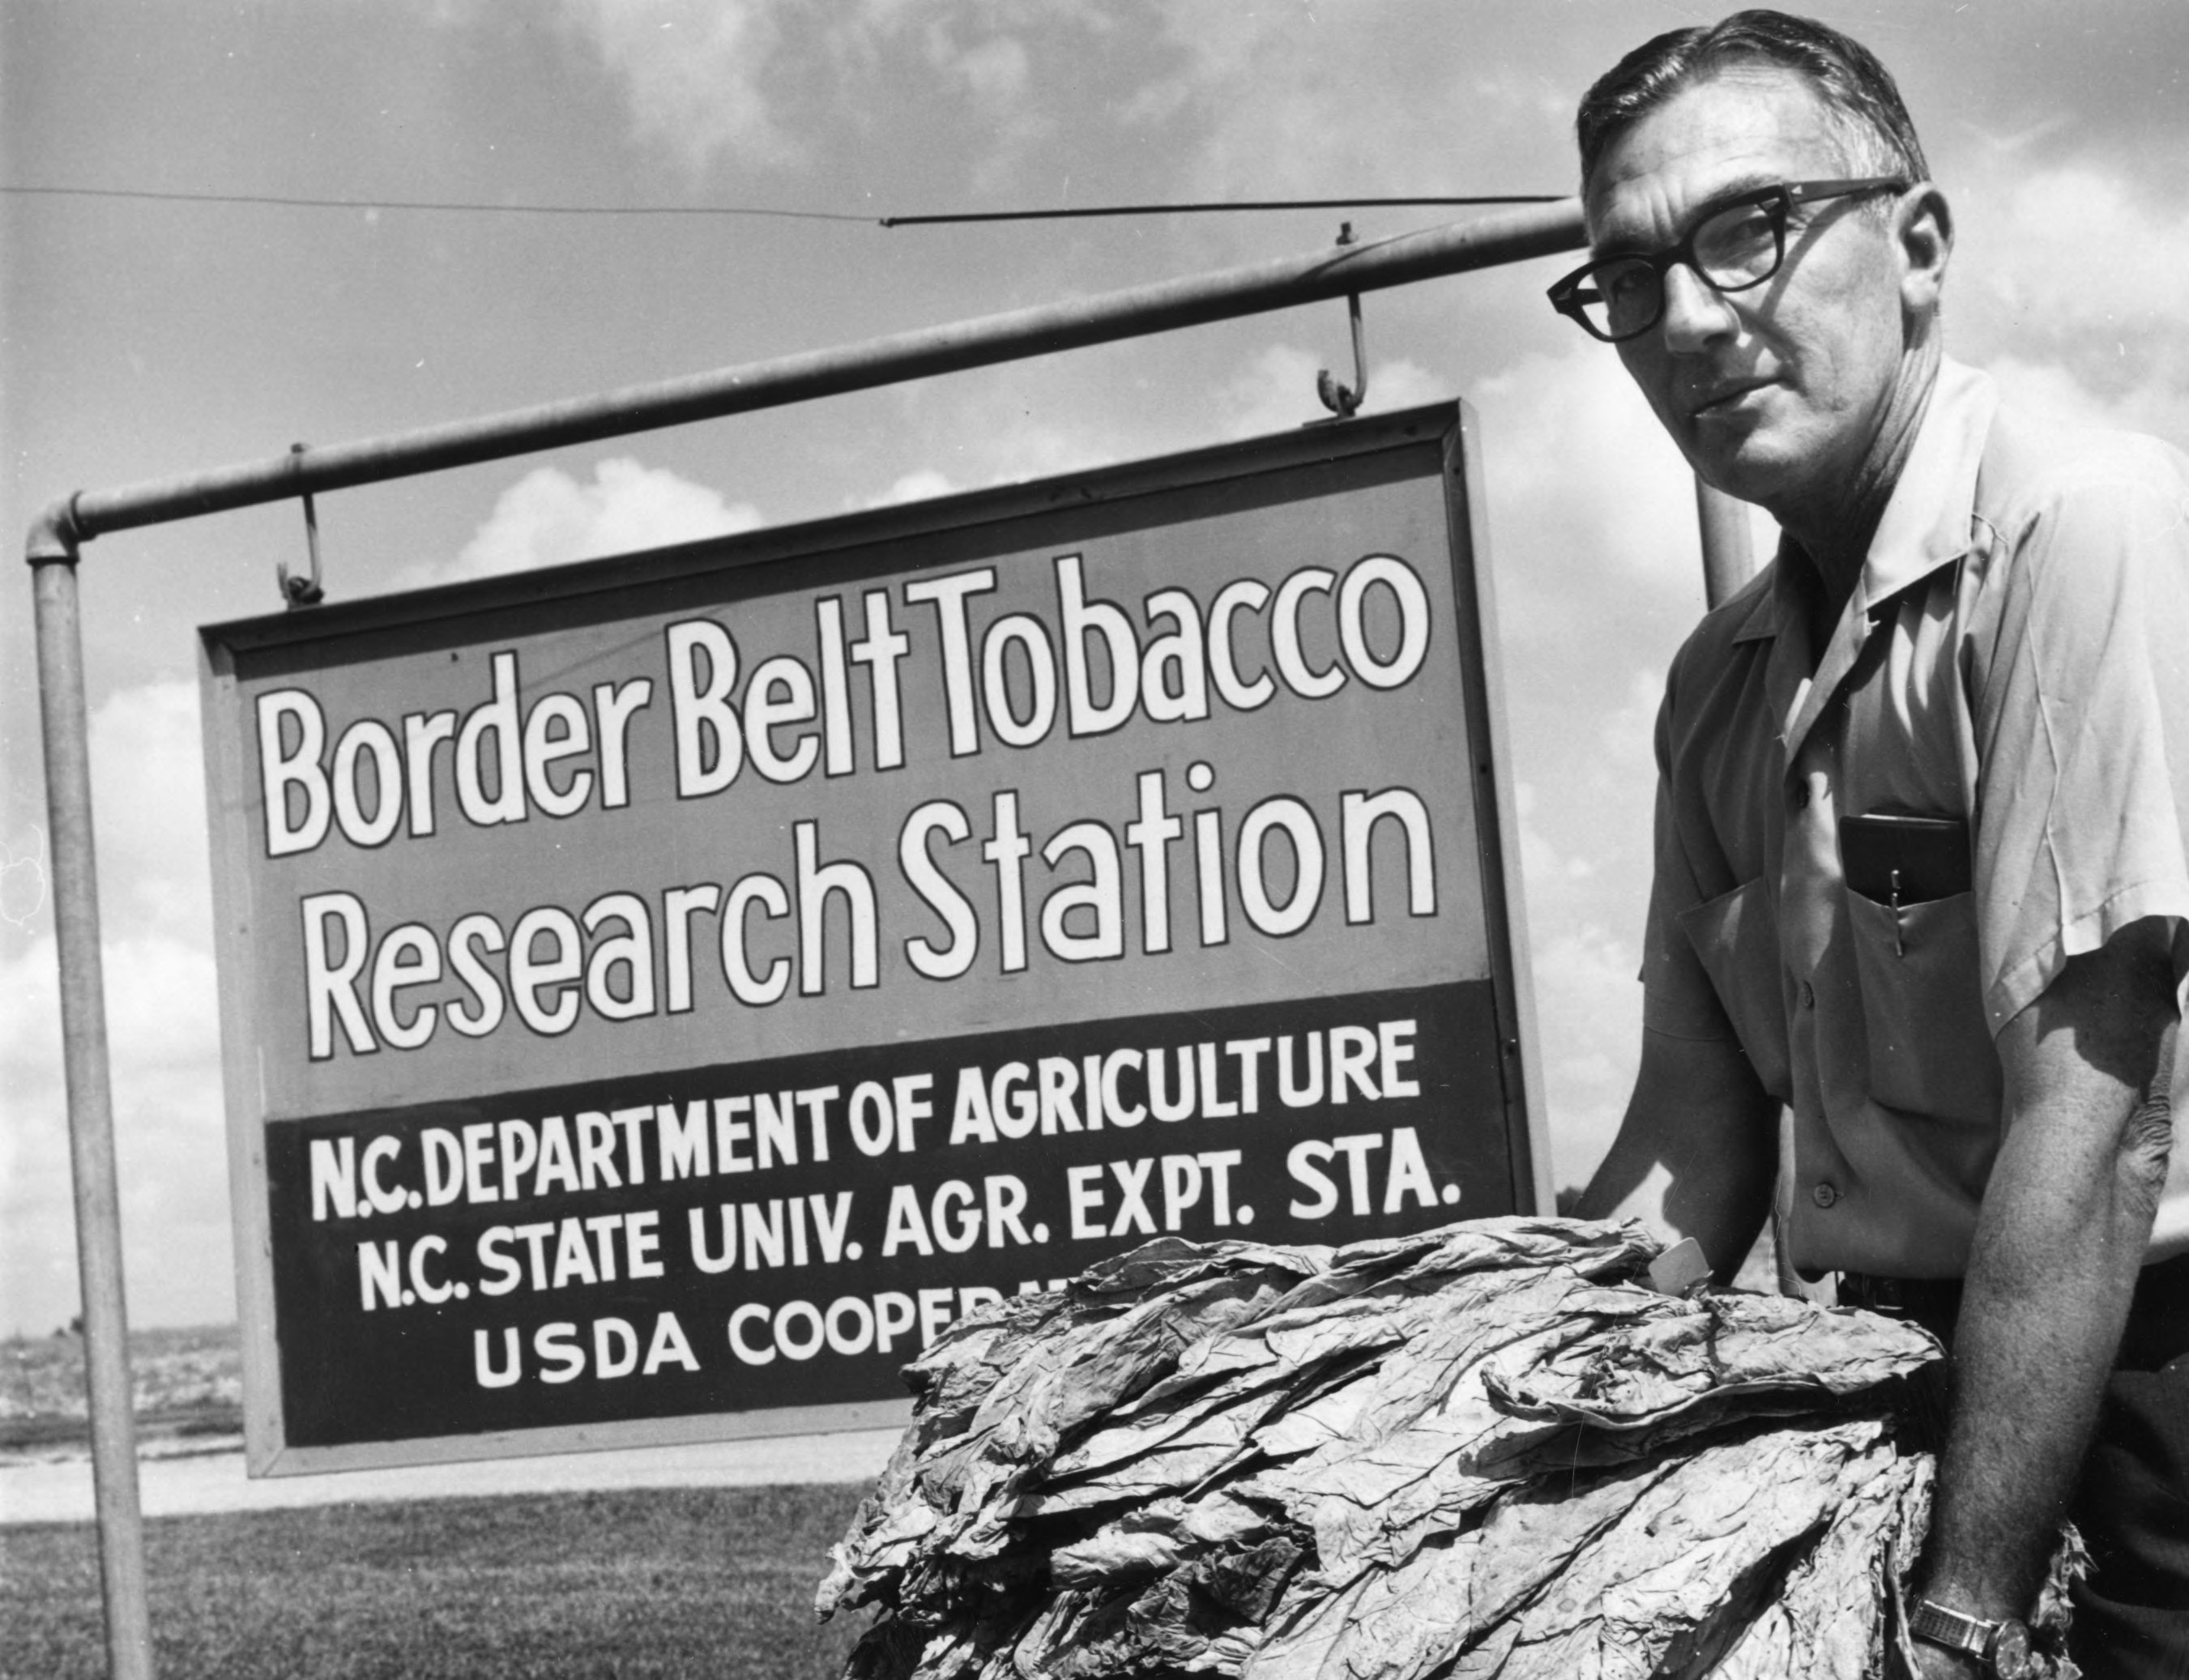 The Border Belt Tobacco Research Station in Whiteville, circa 1940. Image from NCSU Libraries.